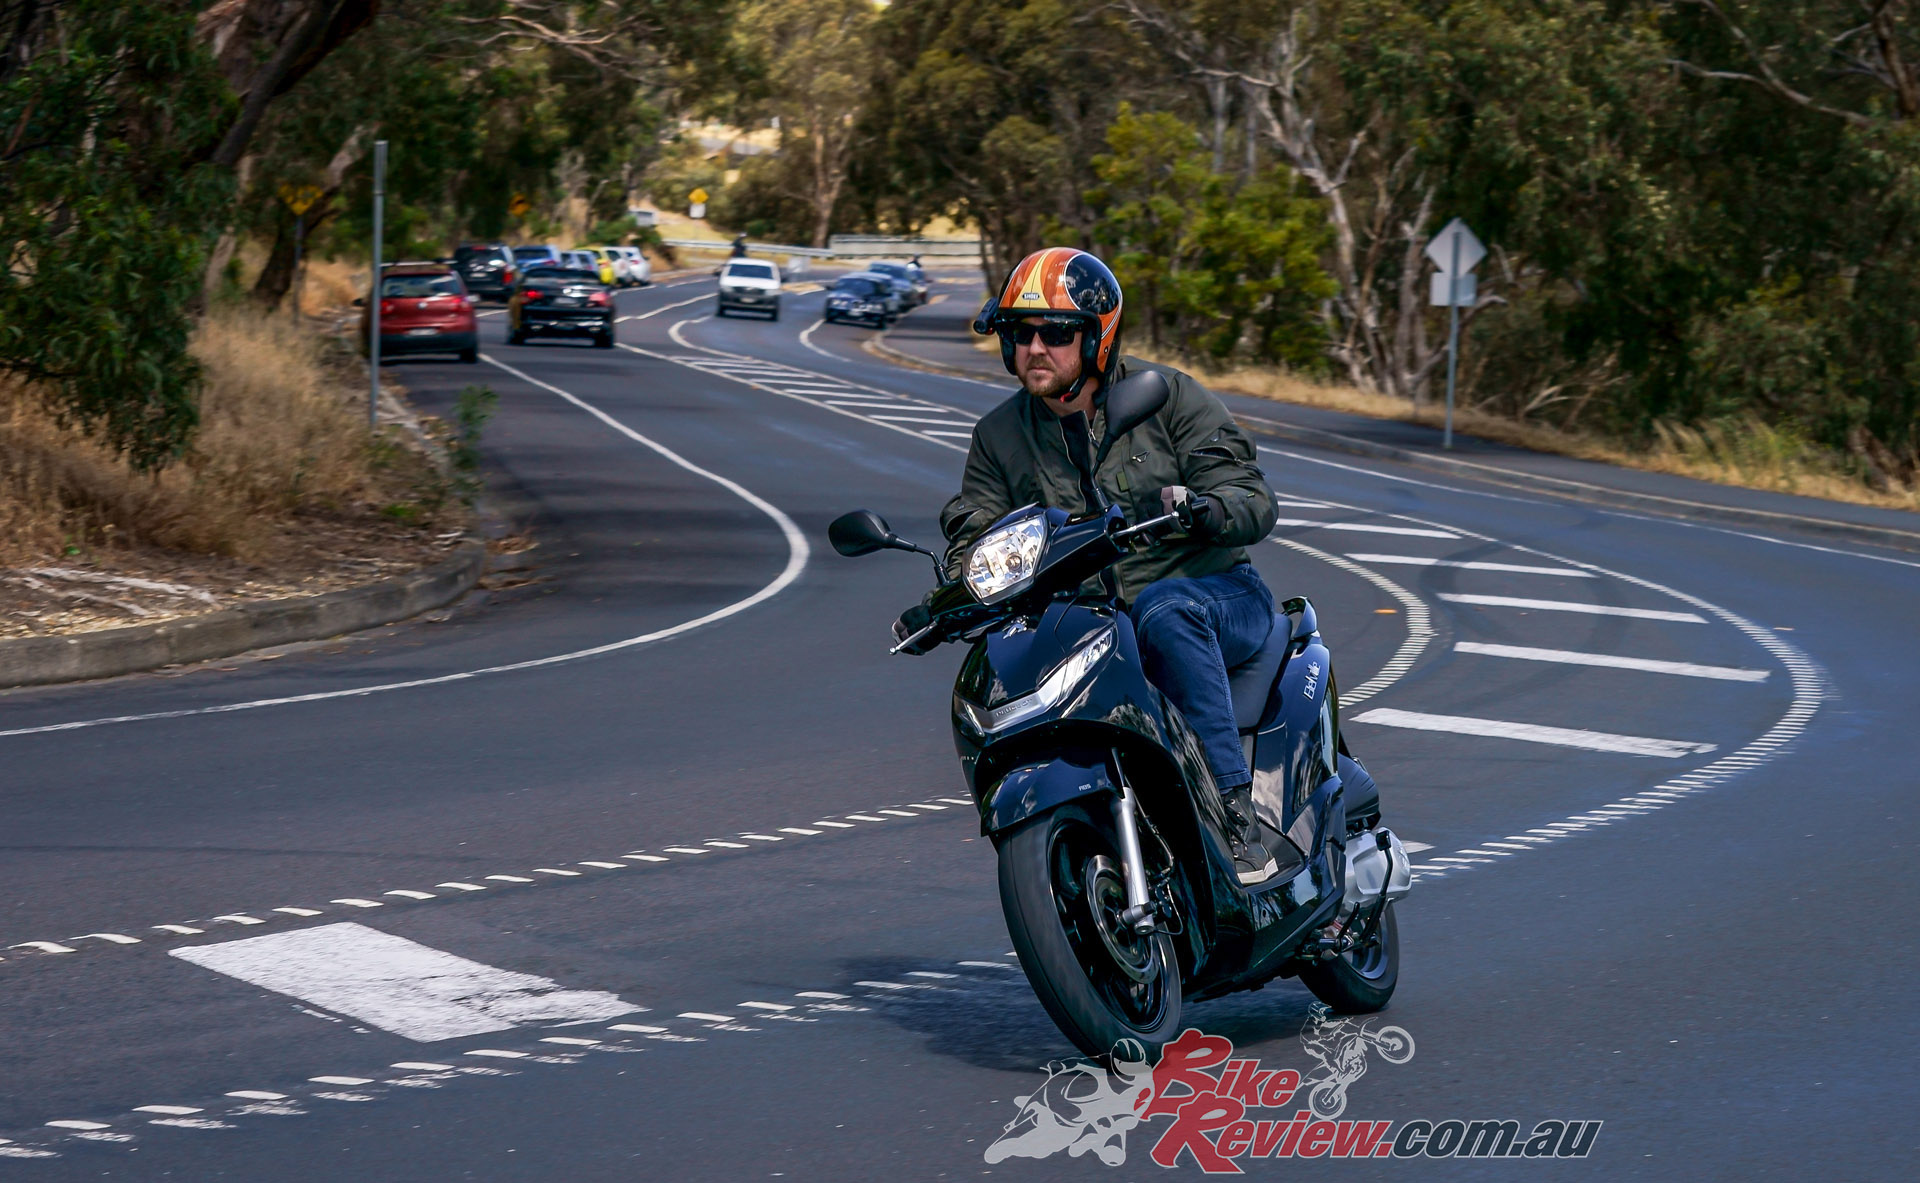 Whether lane splitting or riding in open 60 to 80km/h zones, the Belville is fuss free, easy going and comfortable. More storage would be nice though...